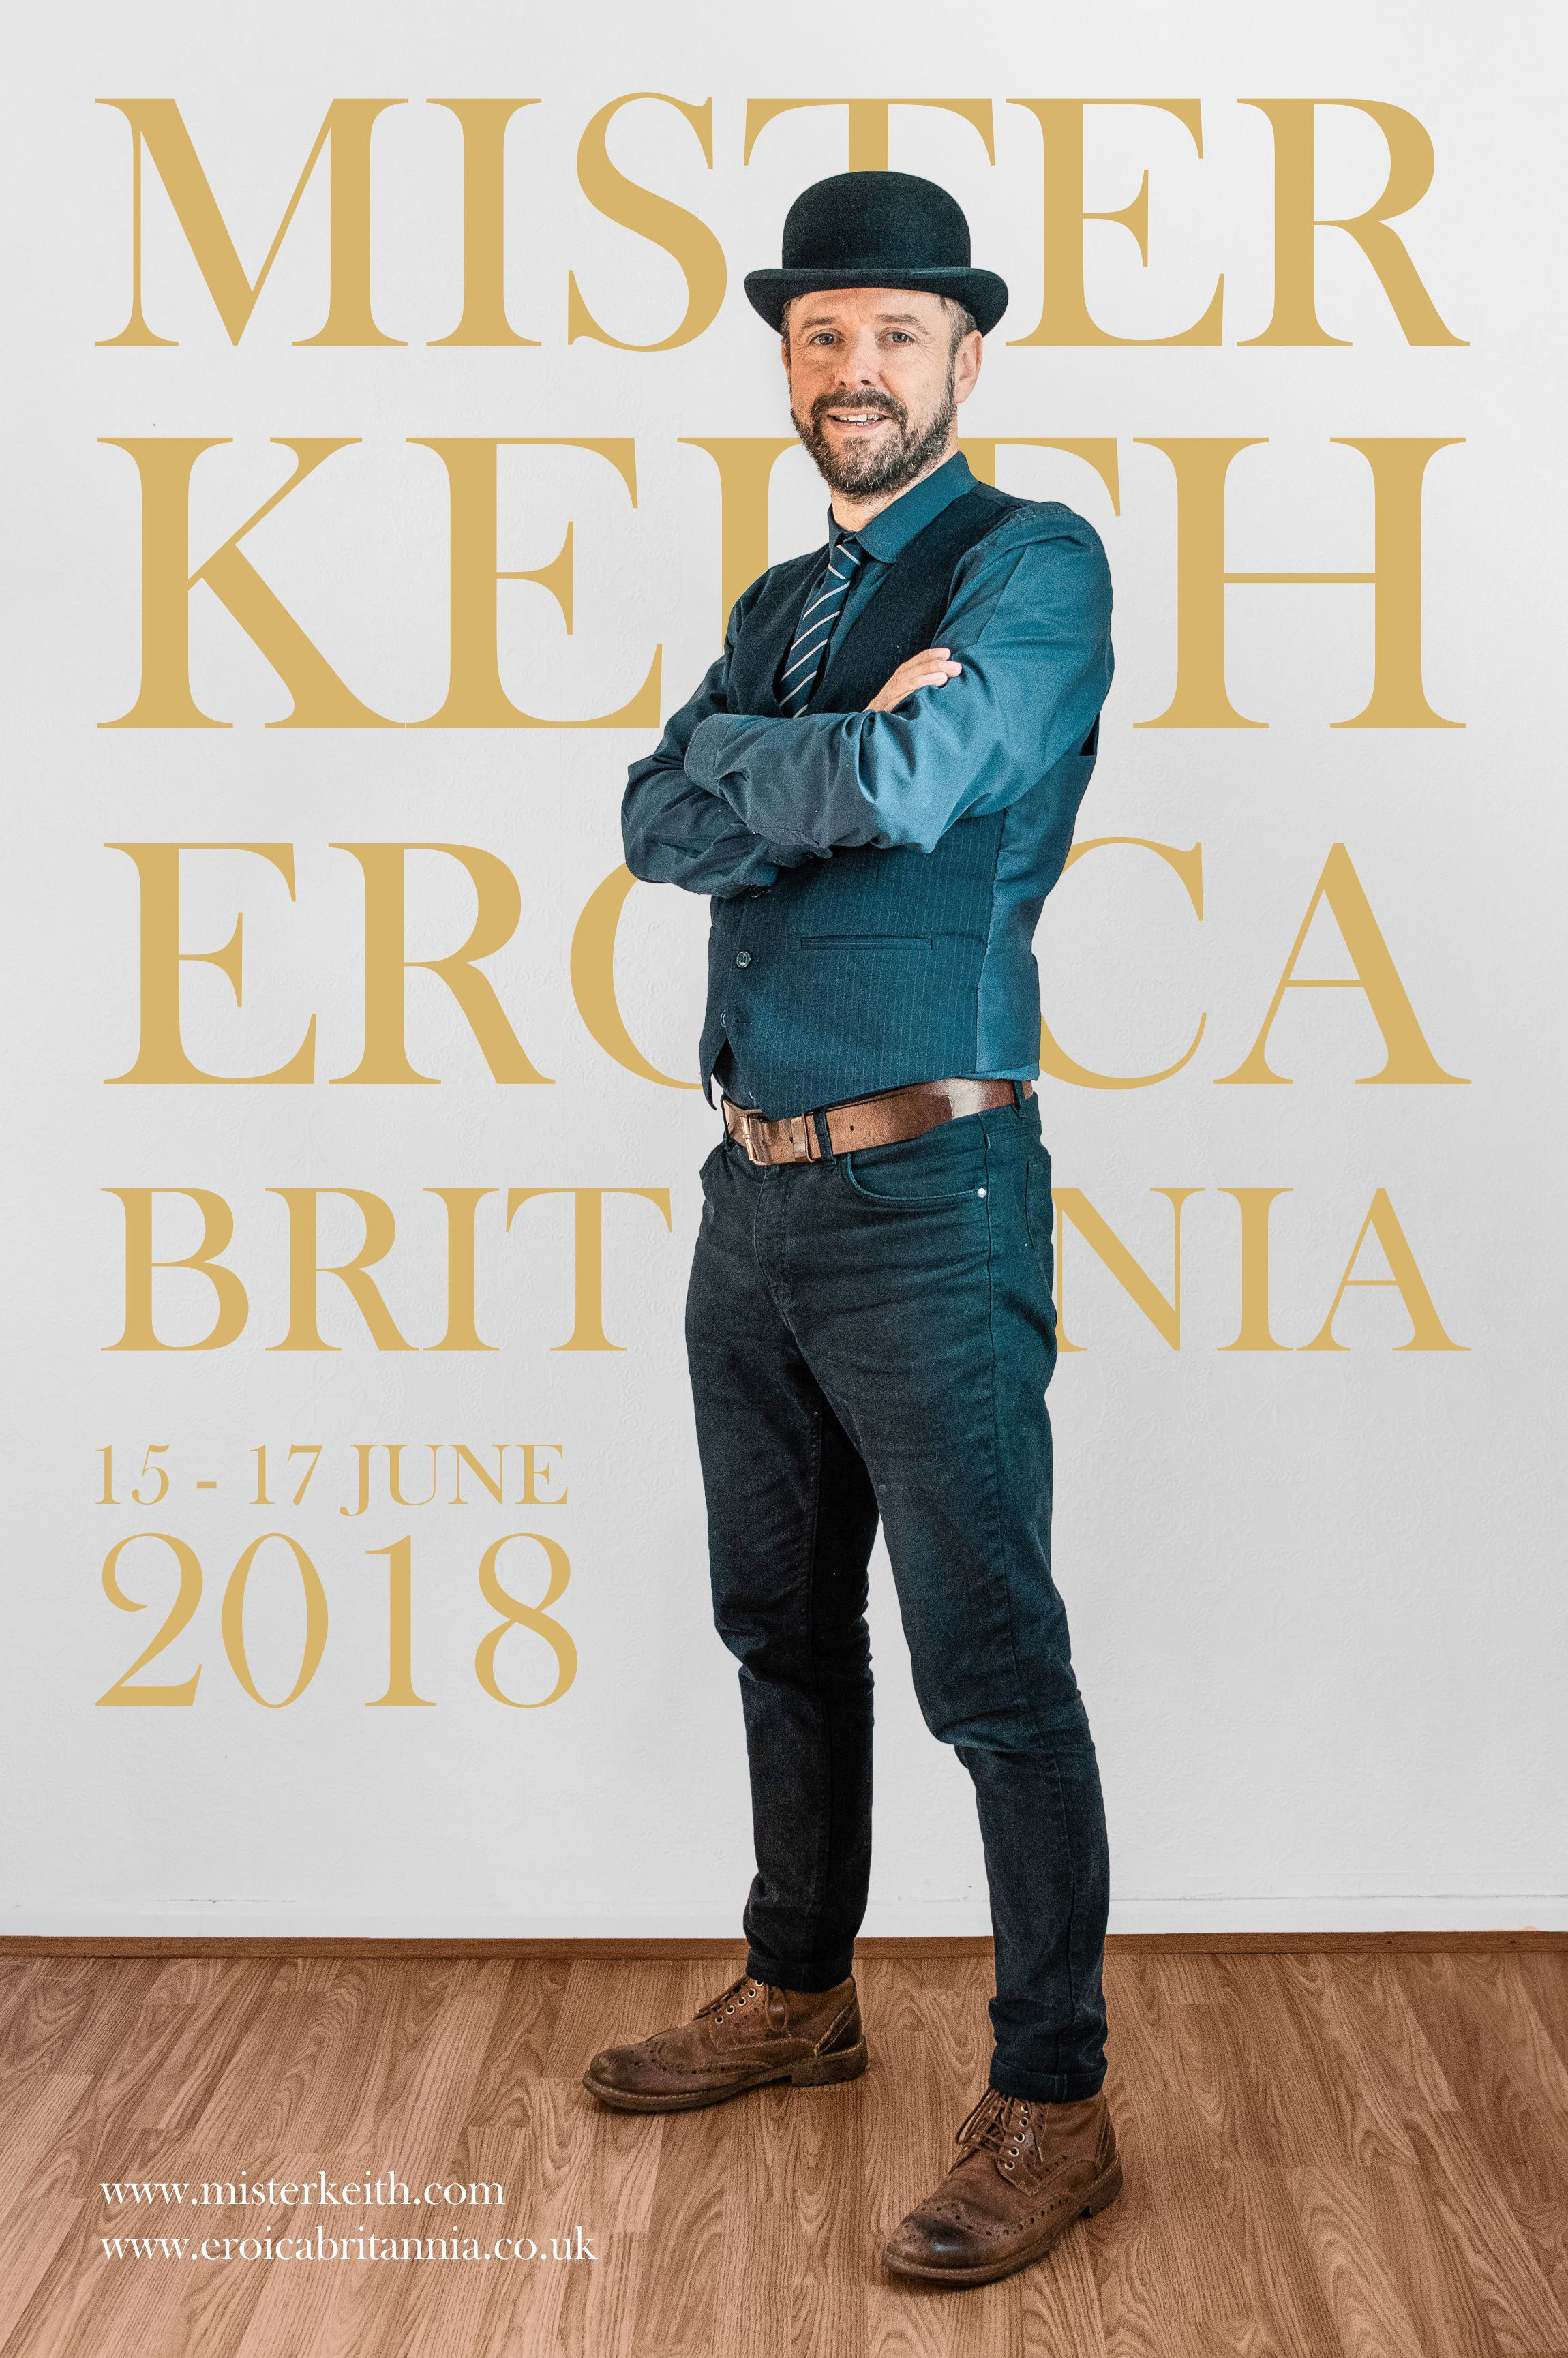 As last year, Mister Keith's performance will be one of the highlights of Eroica Britannia.